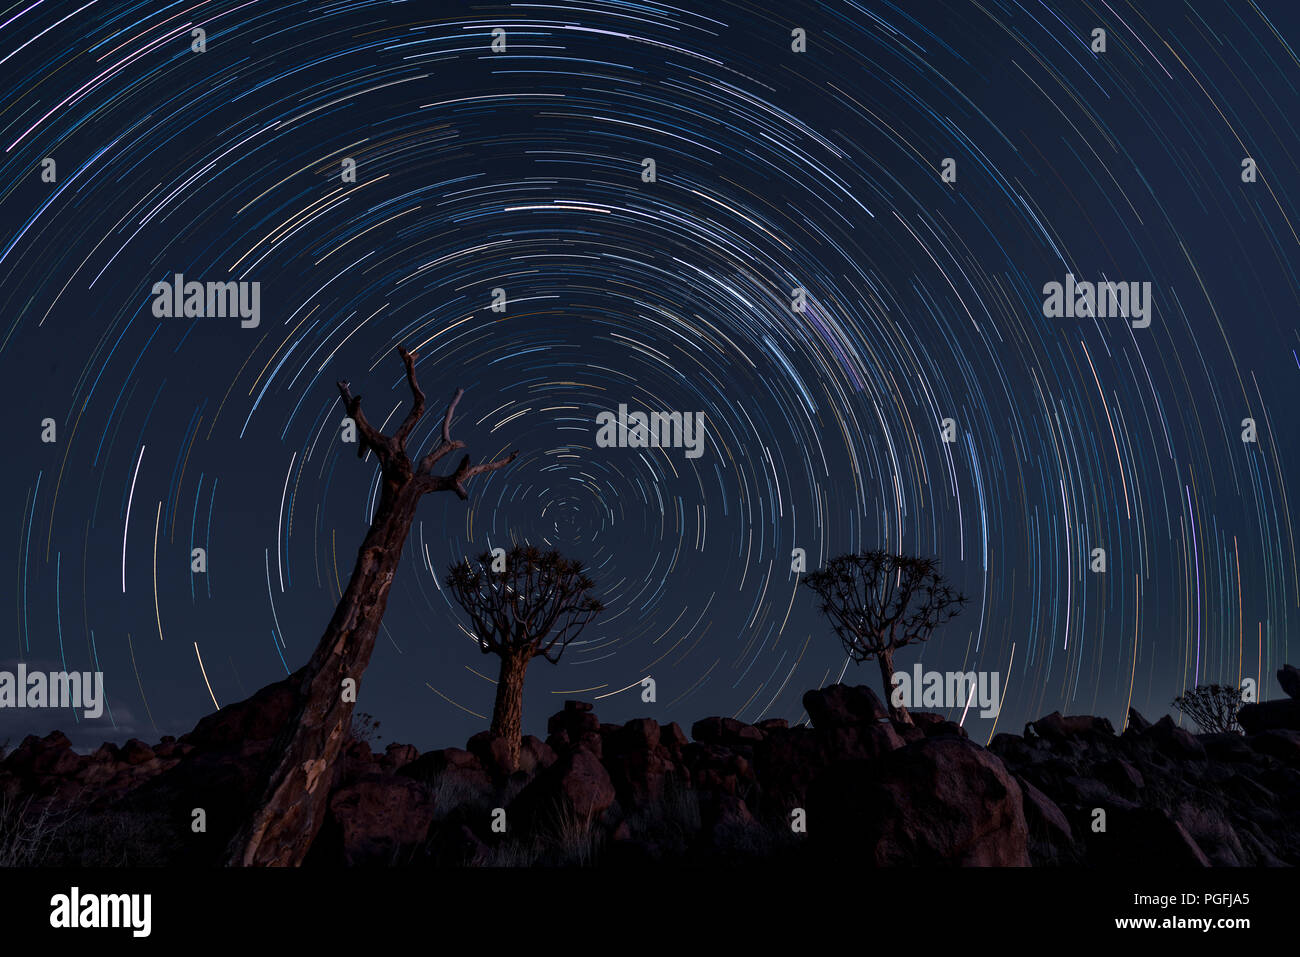 Stsr trails circle over quiver trees in Namibia - Stock Image